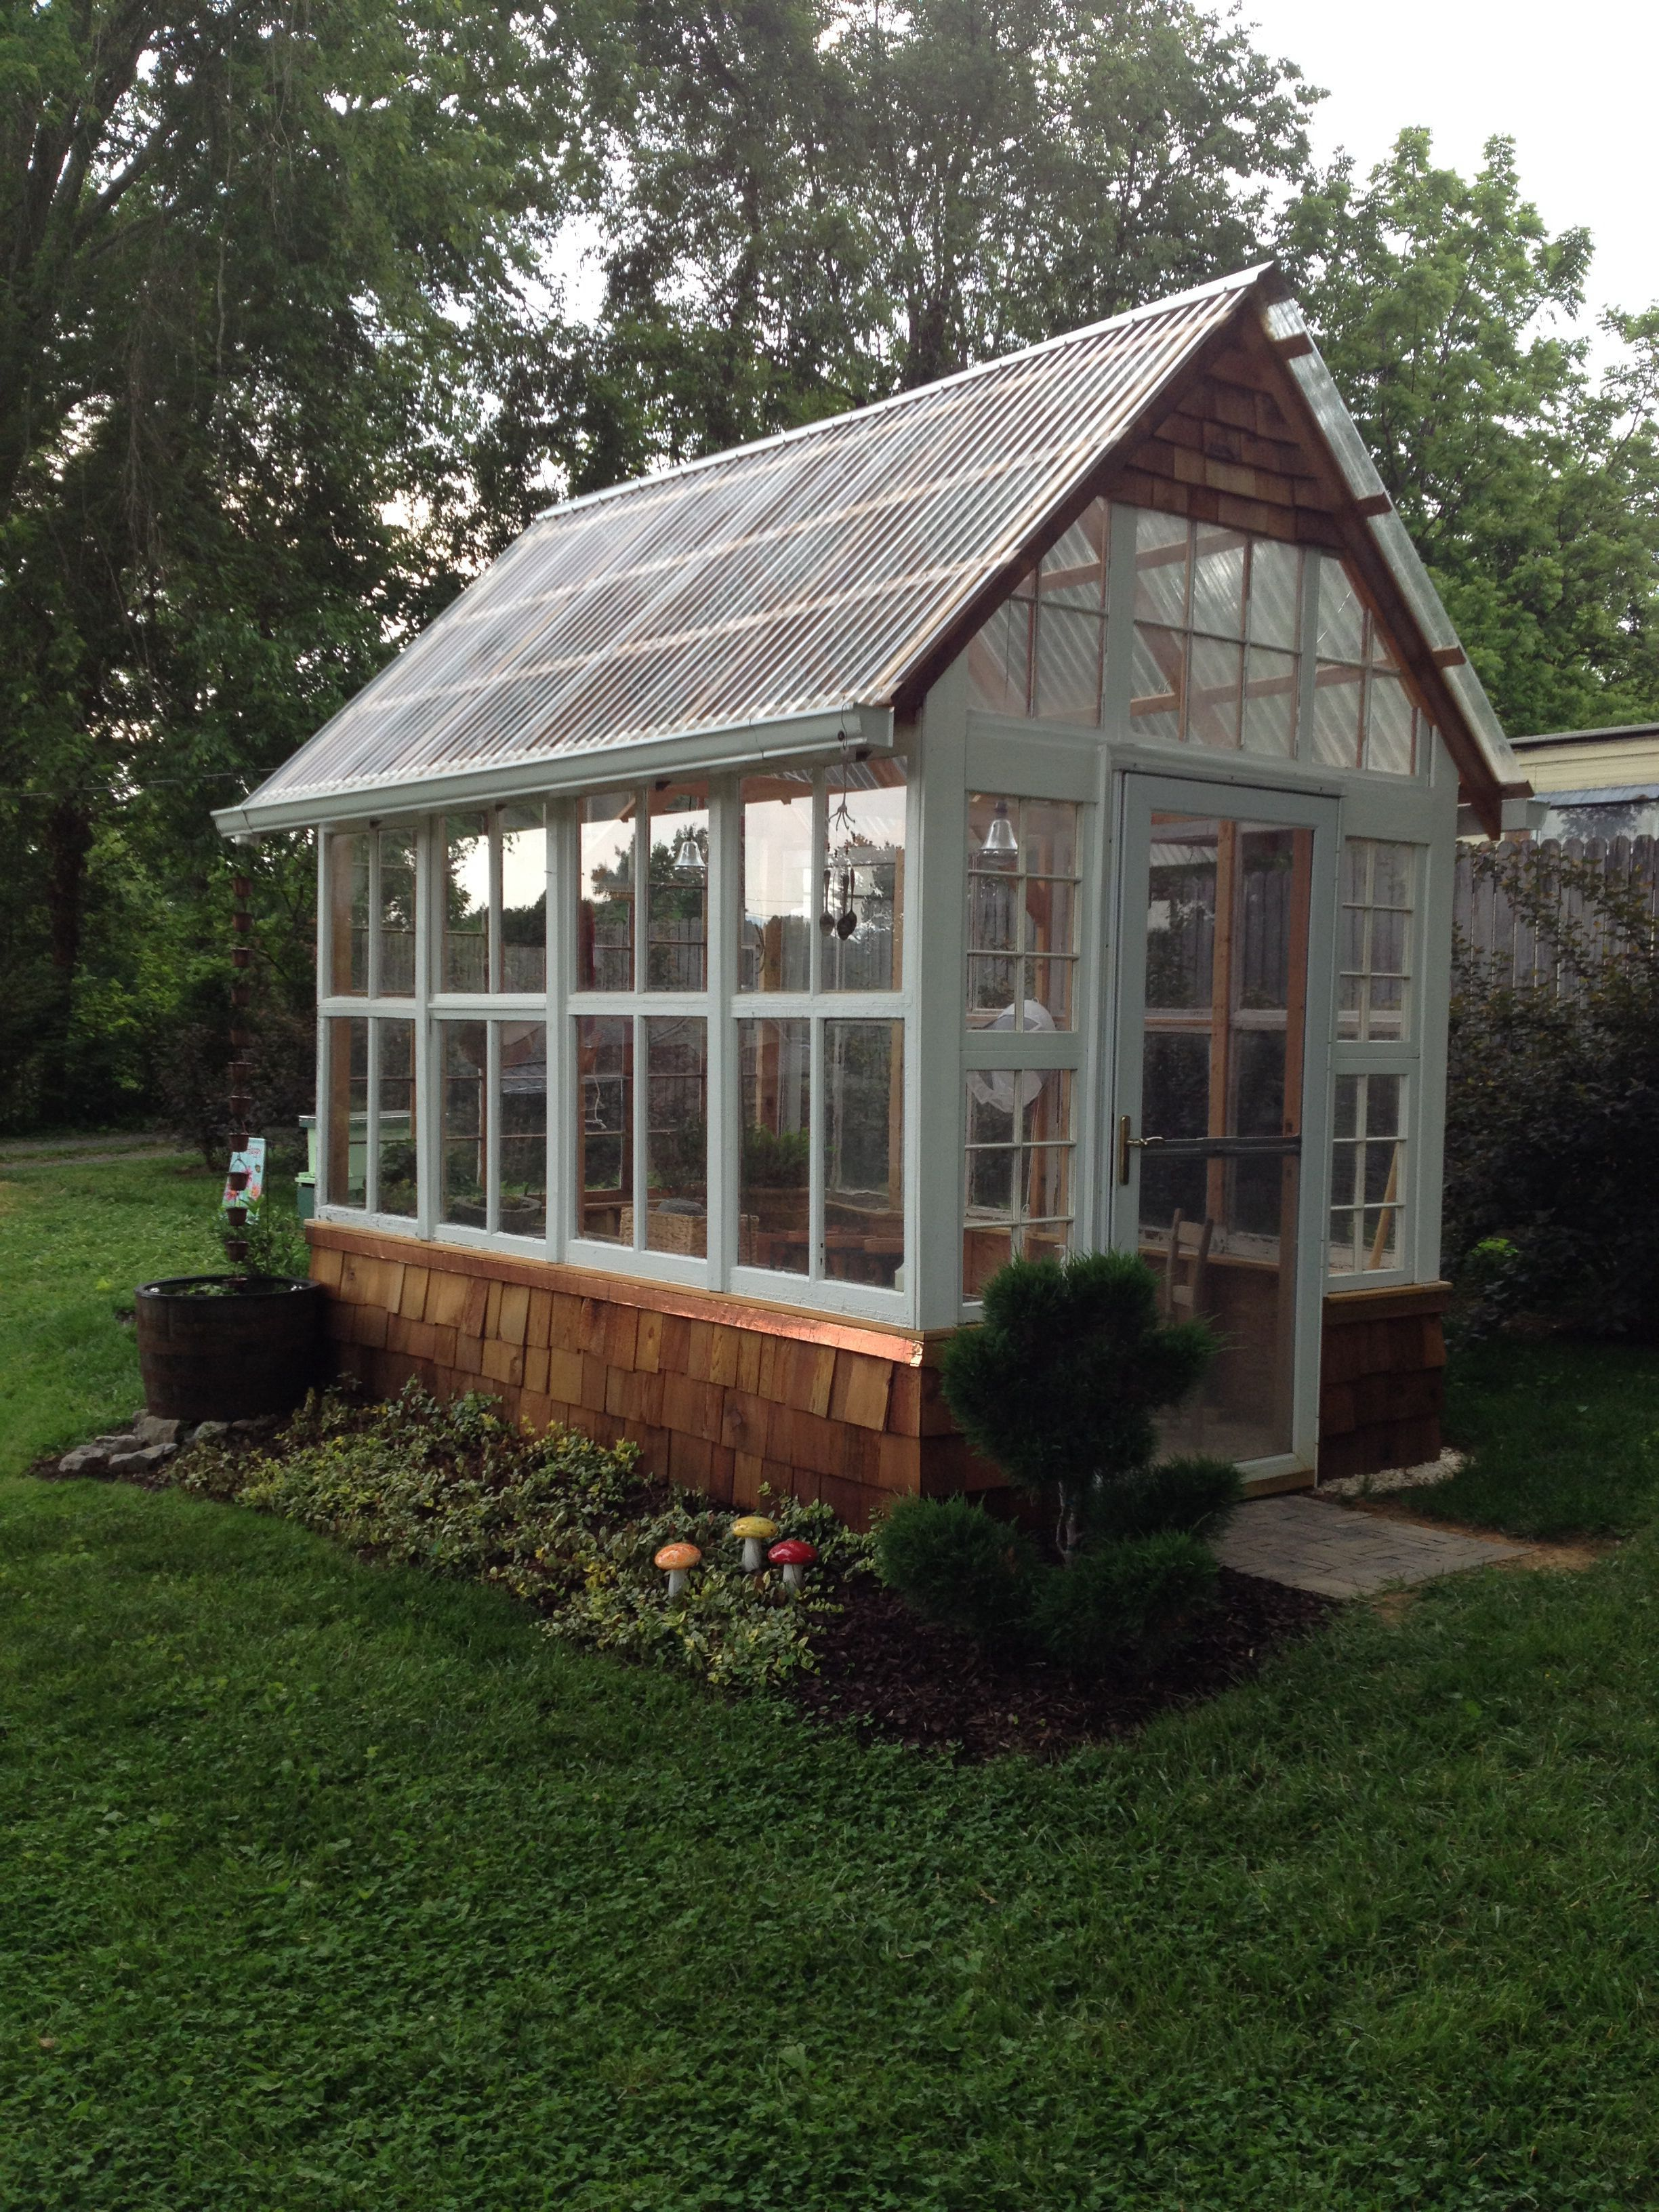 This is a 7'x12' greenhouse I made out of old windows from my home Greenhouse Shed Designs Storage on barn plans 2 story shed, greenhouse blackout systems, greenhouse with shed, greenhouse shed combination, greenhouse plactic umbrell, greenhouse megastore, backyard greenhouse shed, small greenhouse shed, lean to greenhouse shed, greenhouse dog kennel, greenhouse bedroom, build a cheap garden shed, greenhouse tool shed, greenhouse sale texarkana, greenhouse aquaculture, sam's club greenhouse garden shed, greenhouse trailer, greenhouse cabinets, greenhouse potting shed, greenhouse shed combo,